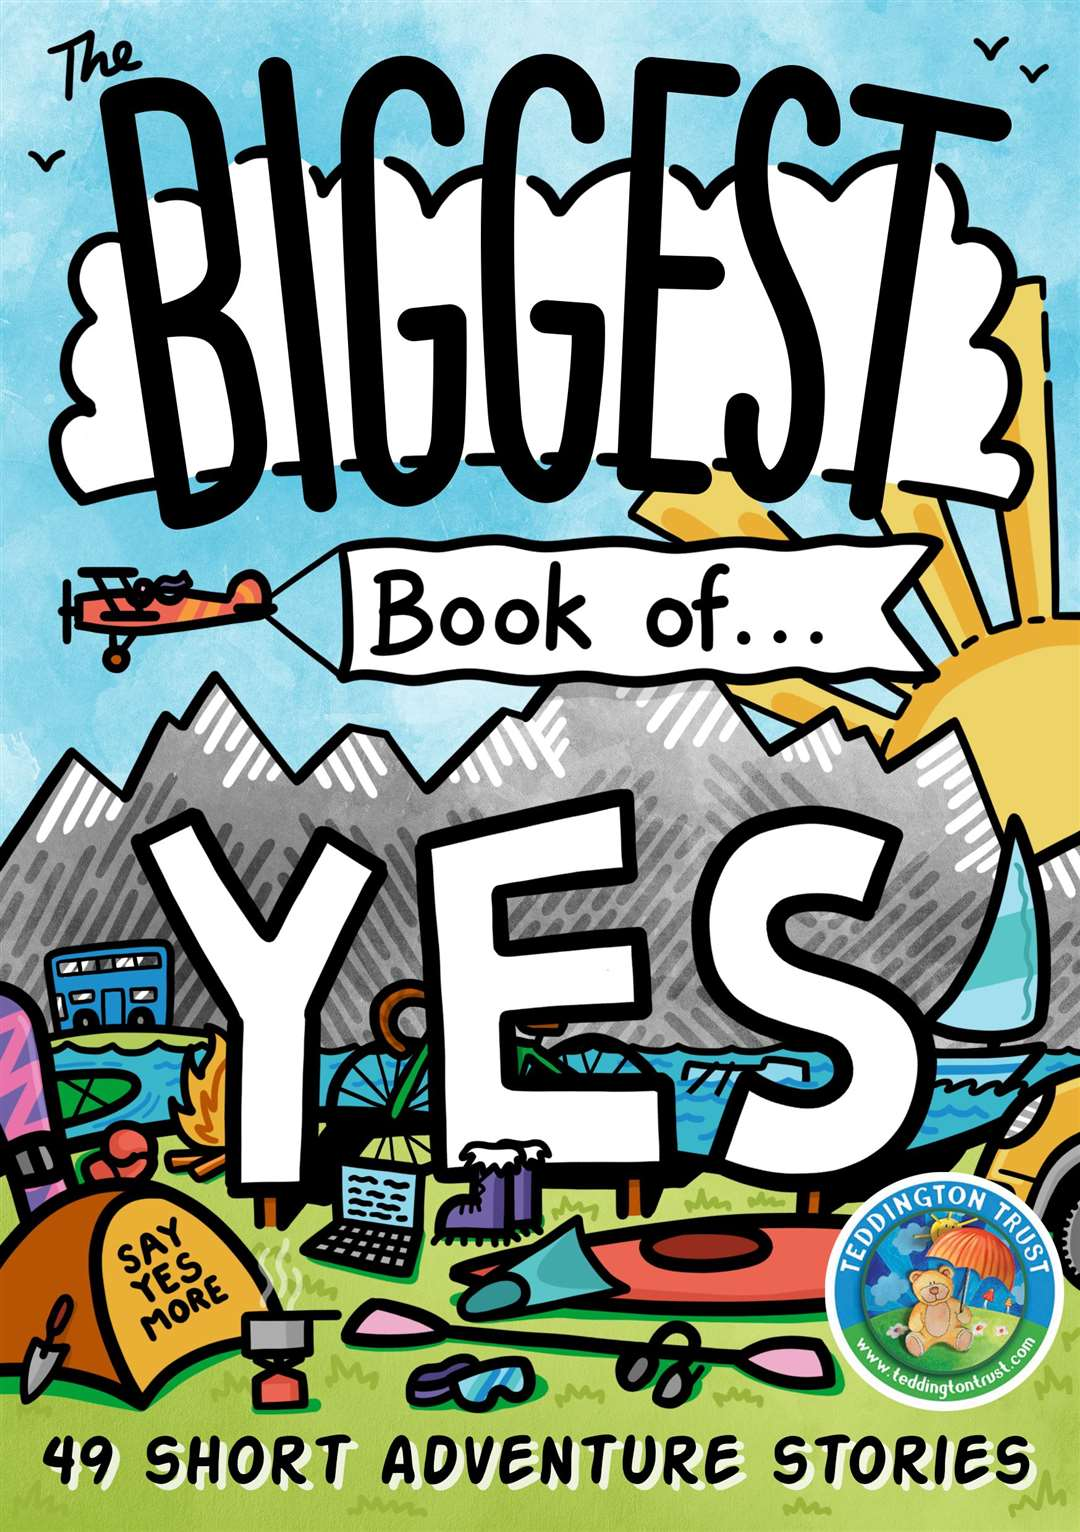 The Biggest Book of... Yes is the third anthology from The Yes Tribe